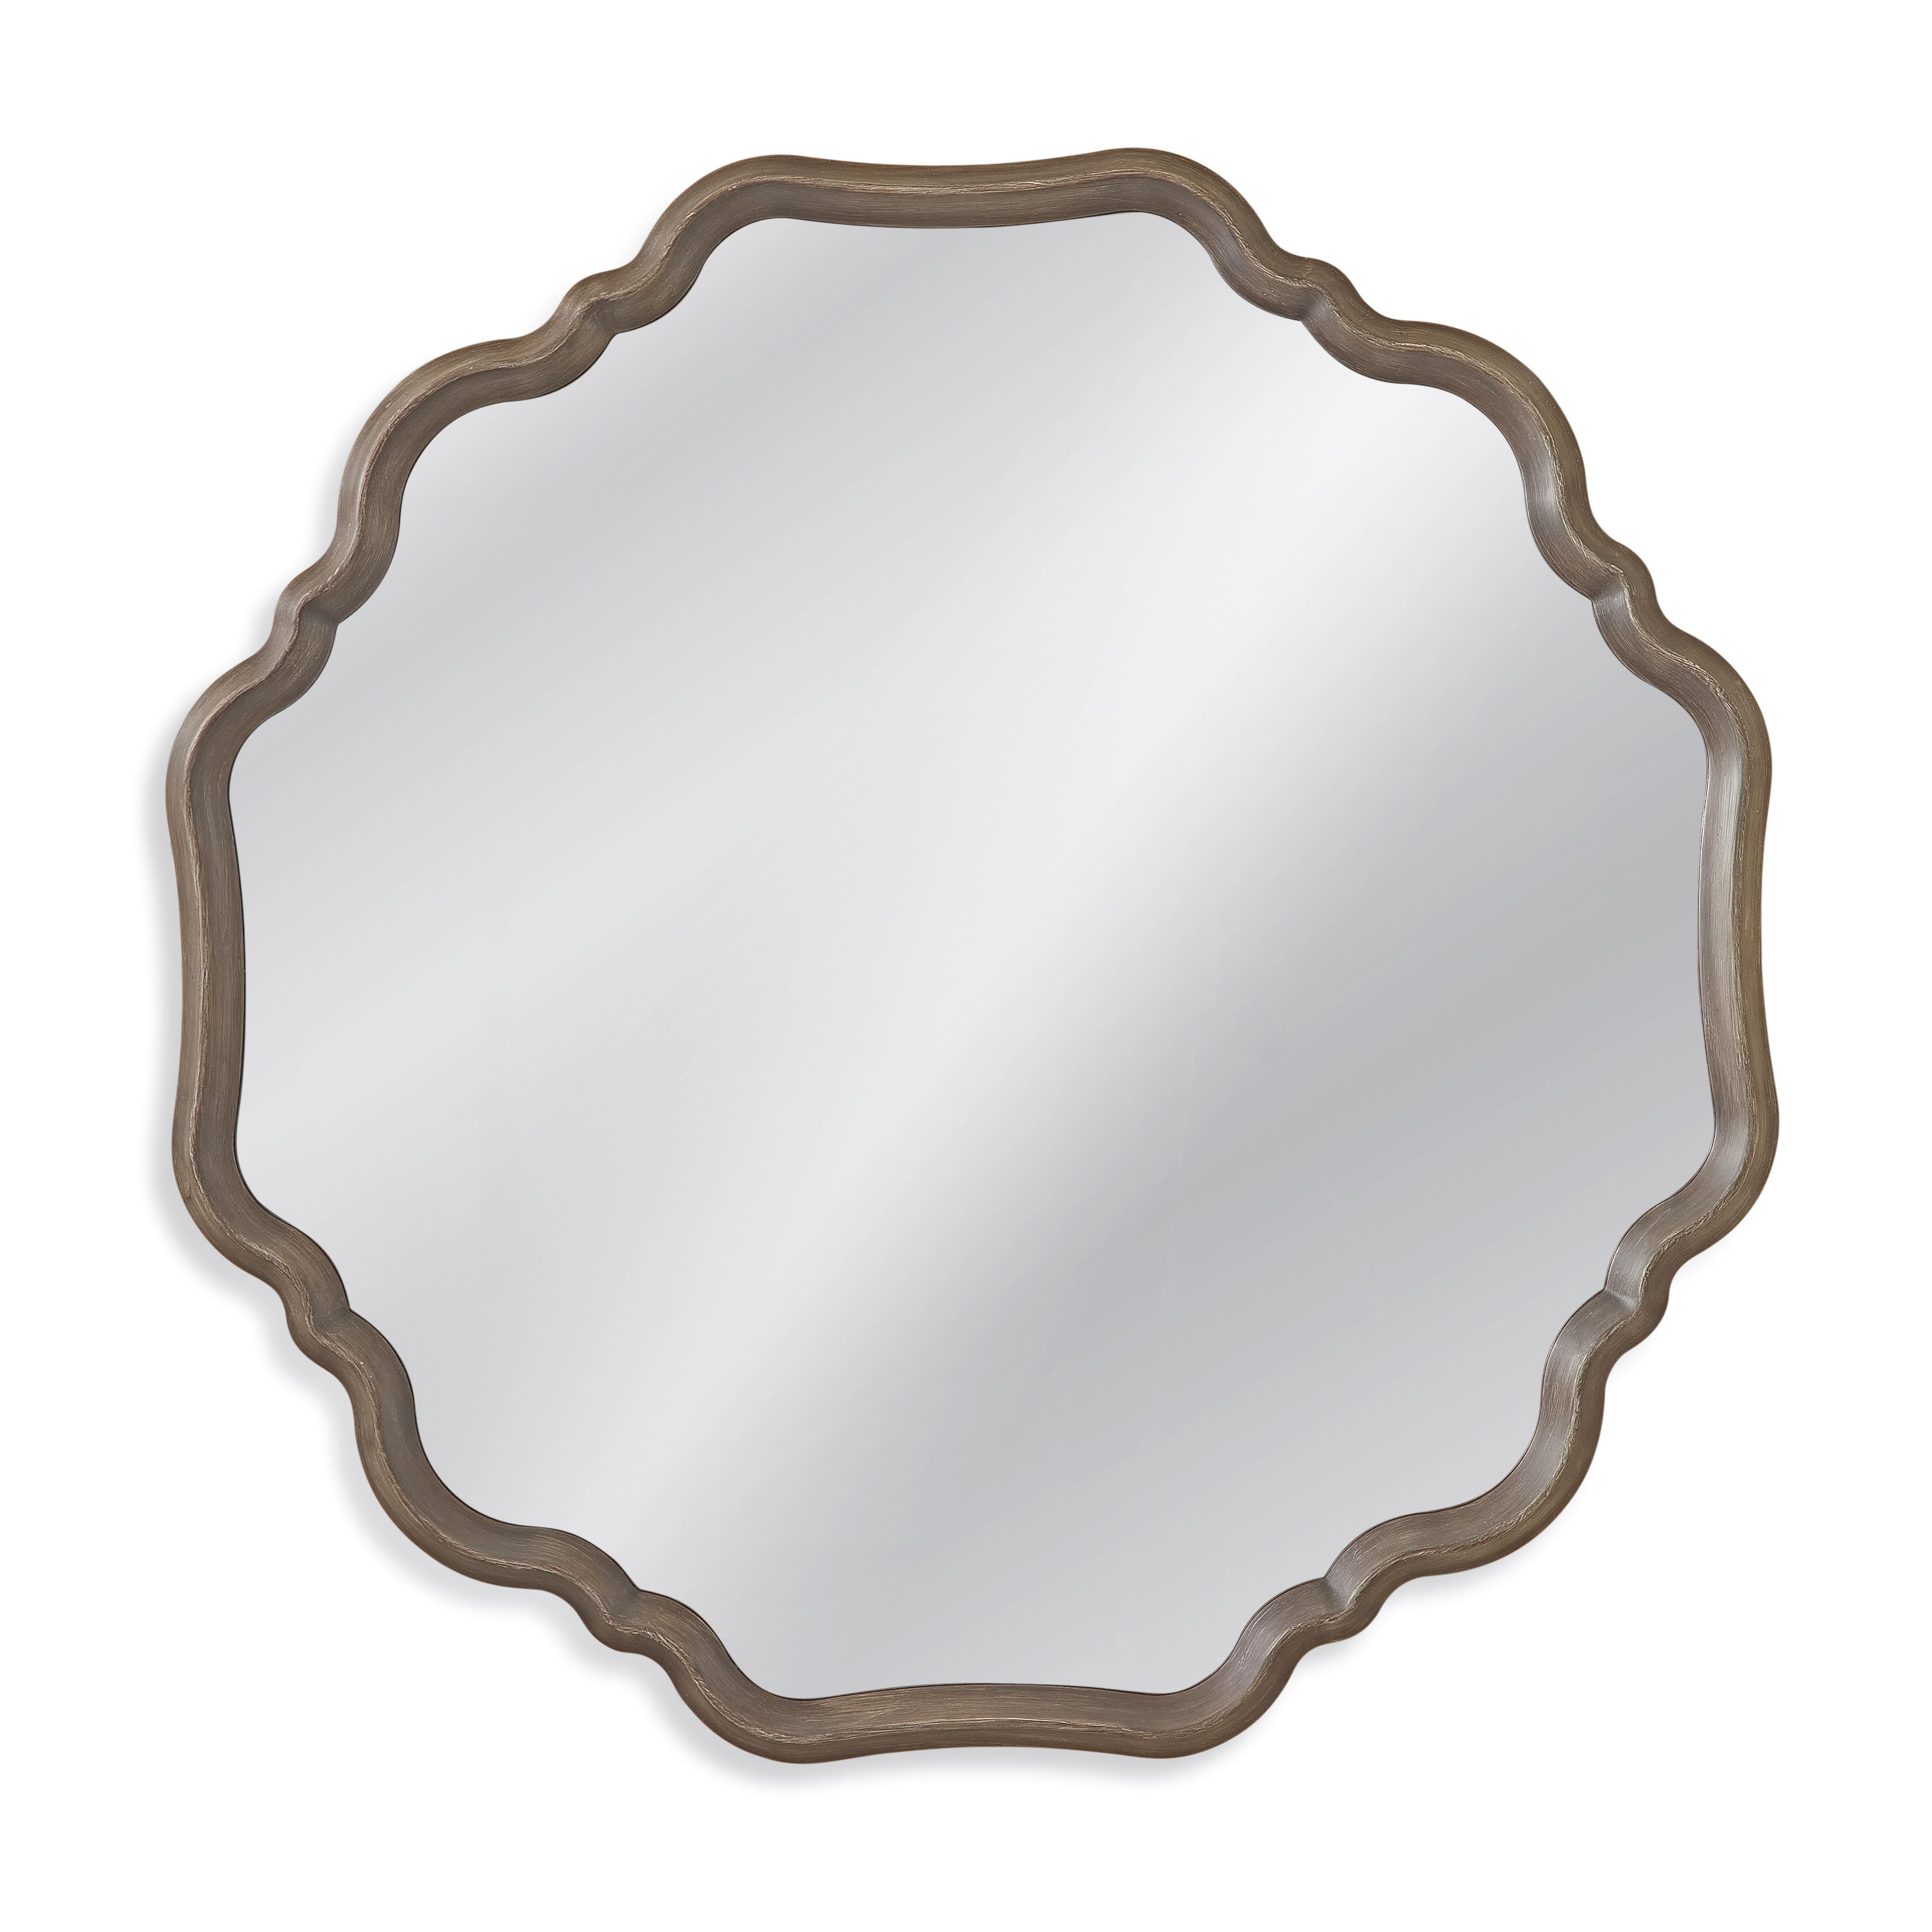 Belgian Luxe Davenport Wall Mirror by Bassett Mirror at Alison Craig Home Furnishings